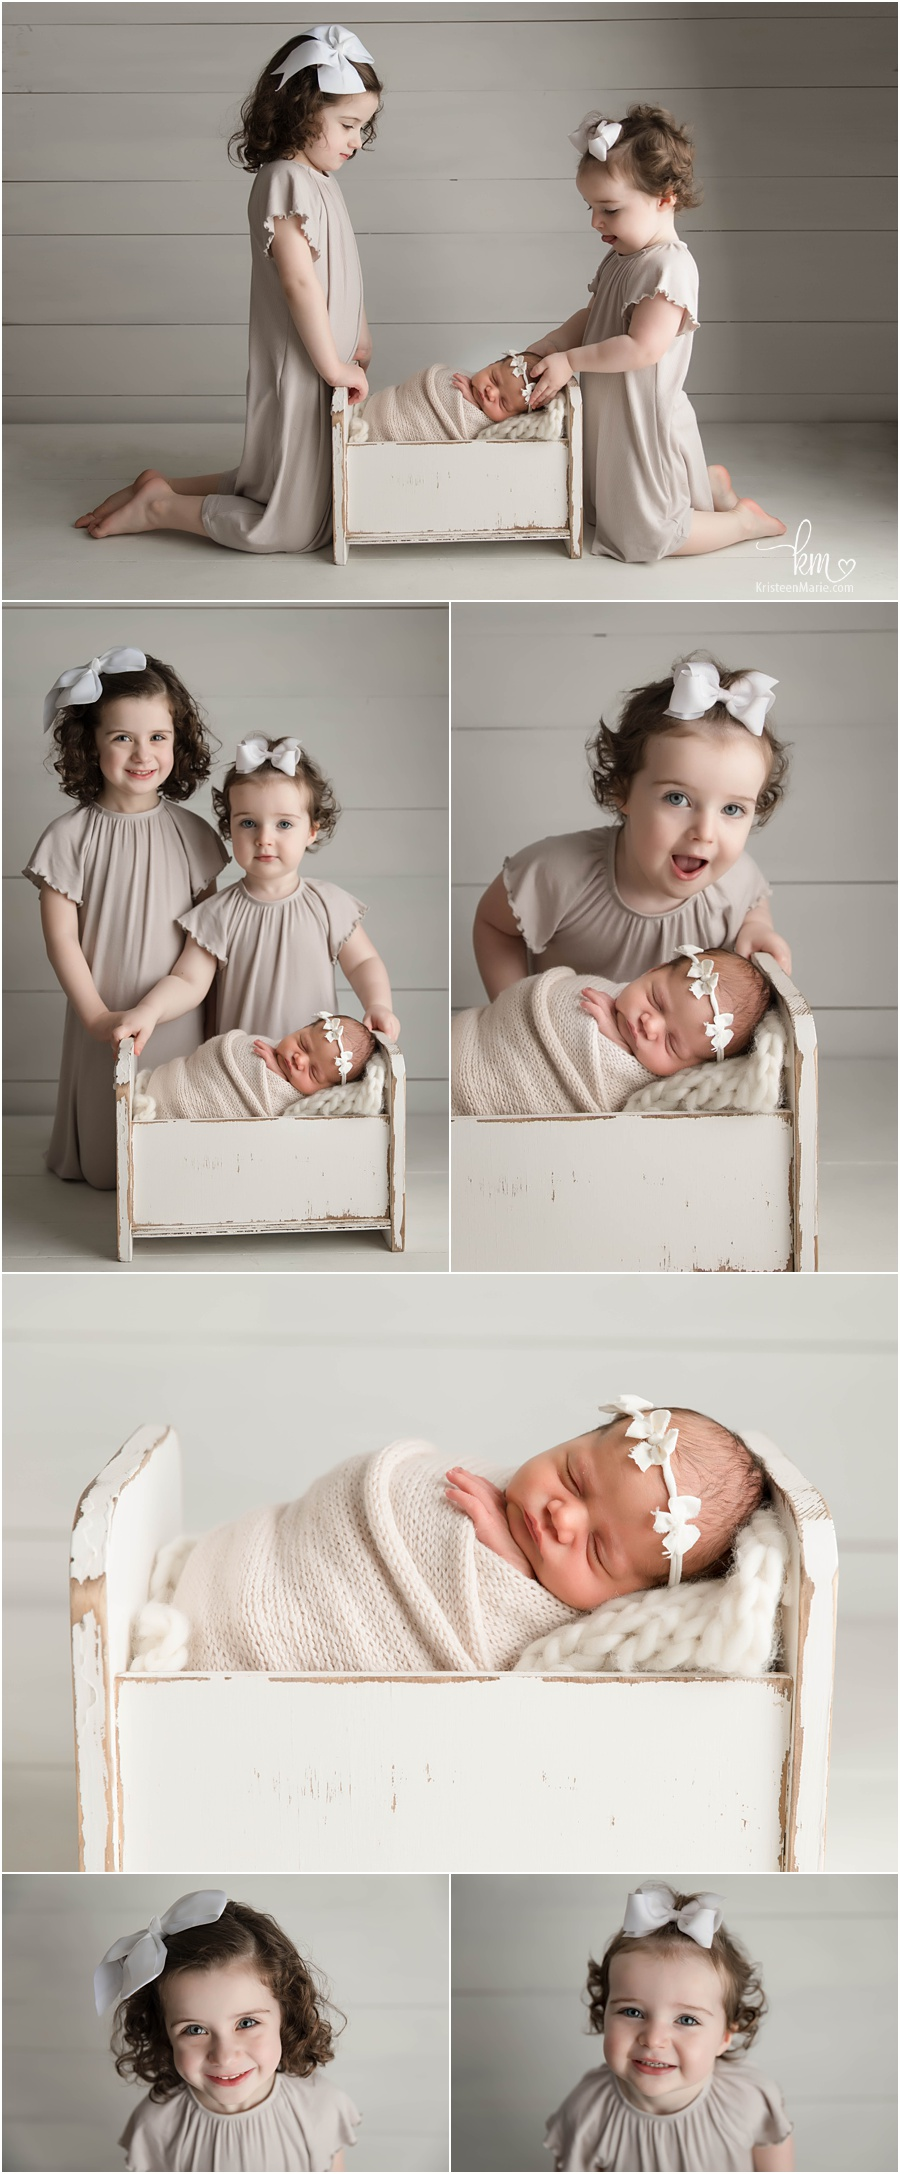 sibling shots with three including newborn baby